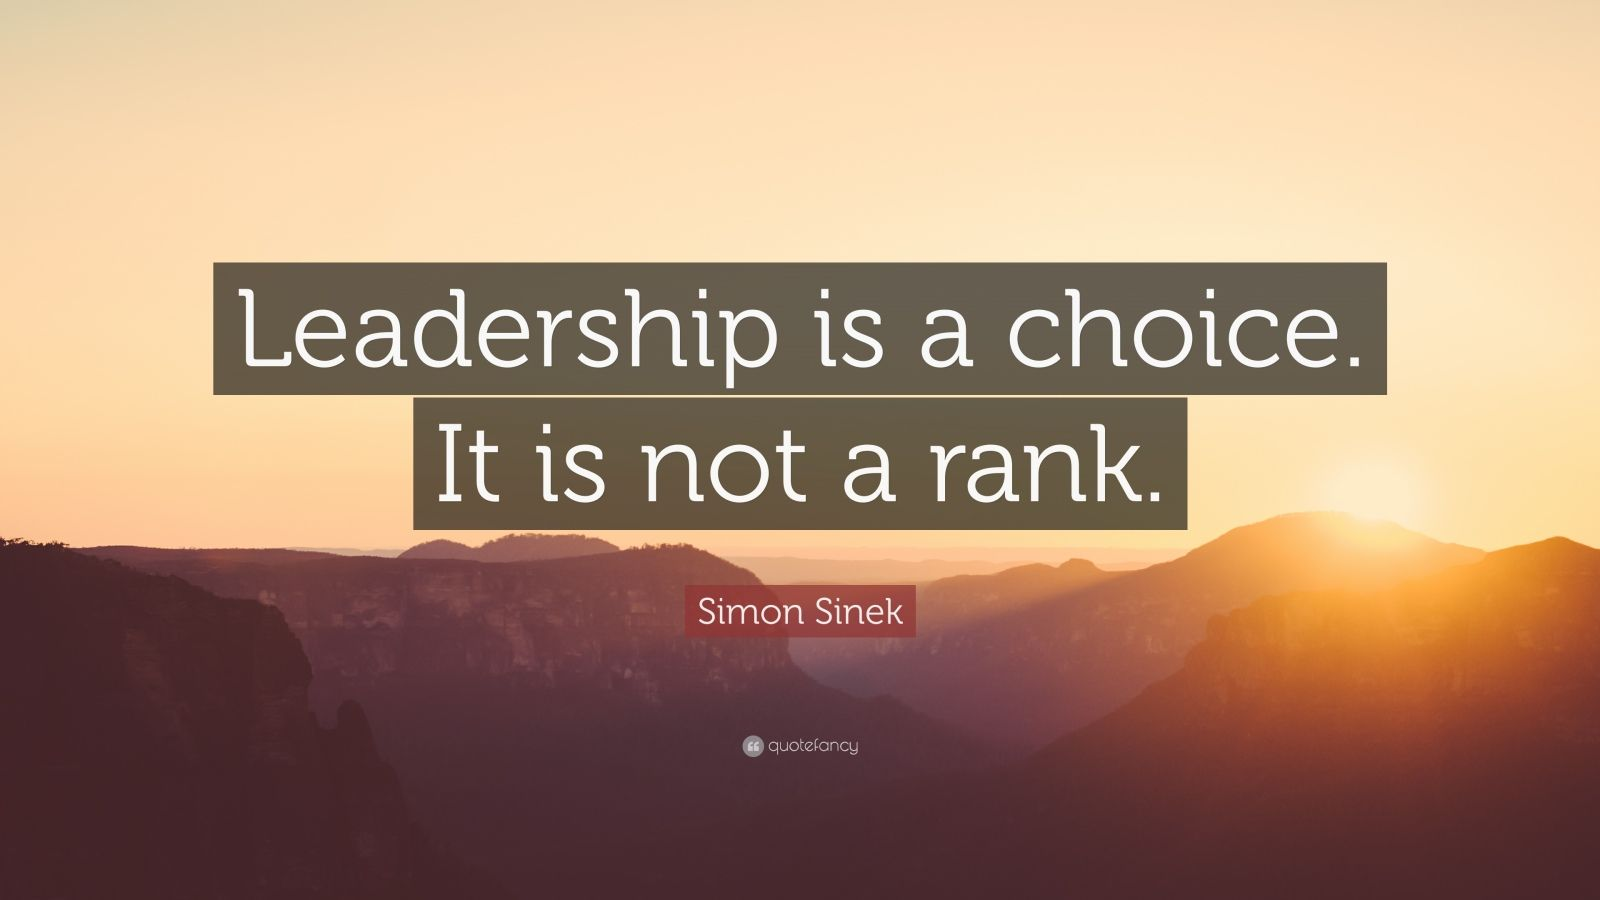 Casey Neistat Quotes Wallpaper Simon Sinek Quote Leadership Is A Choice It Is Not A